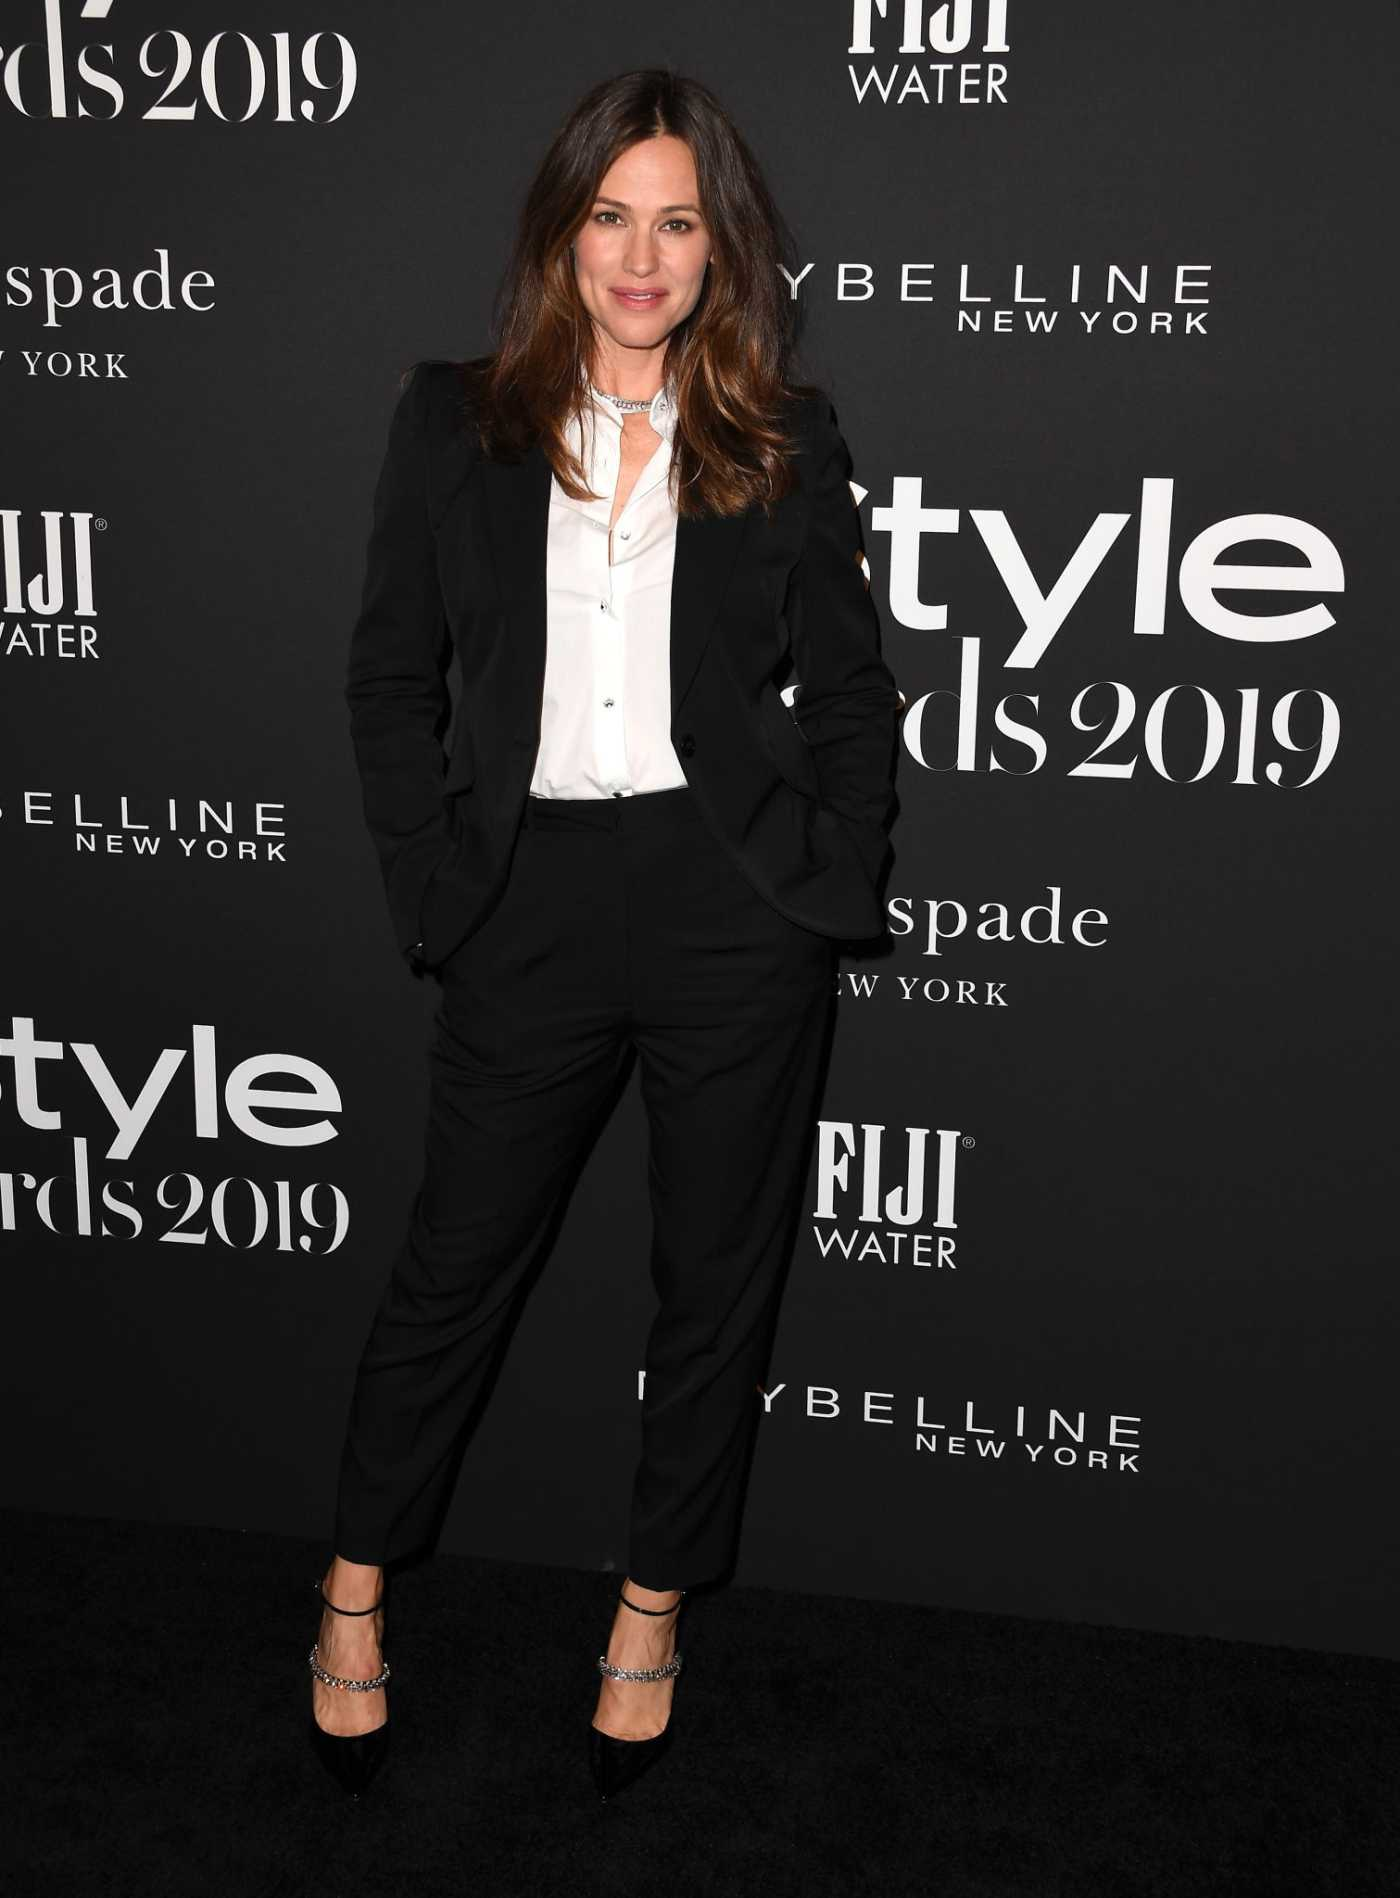 Jennifer Garner Attends the 5th Annual InStyle Awards in Los Angeles 10/21/2019